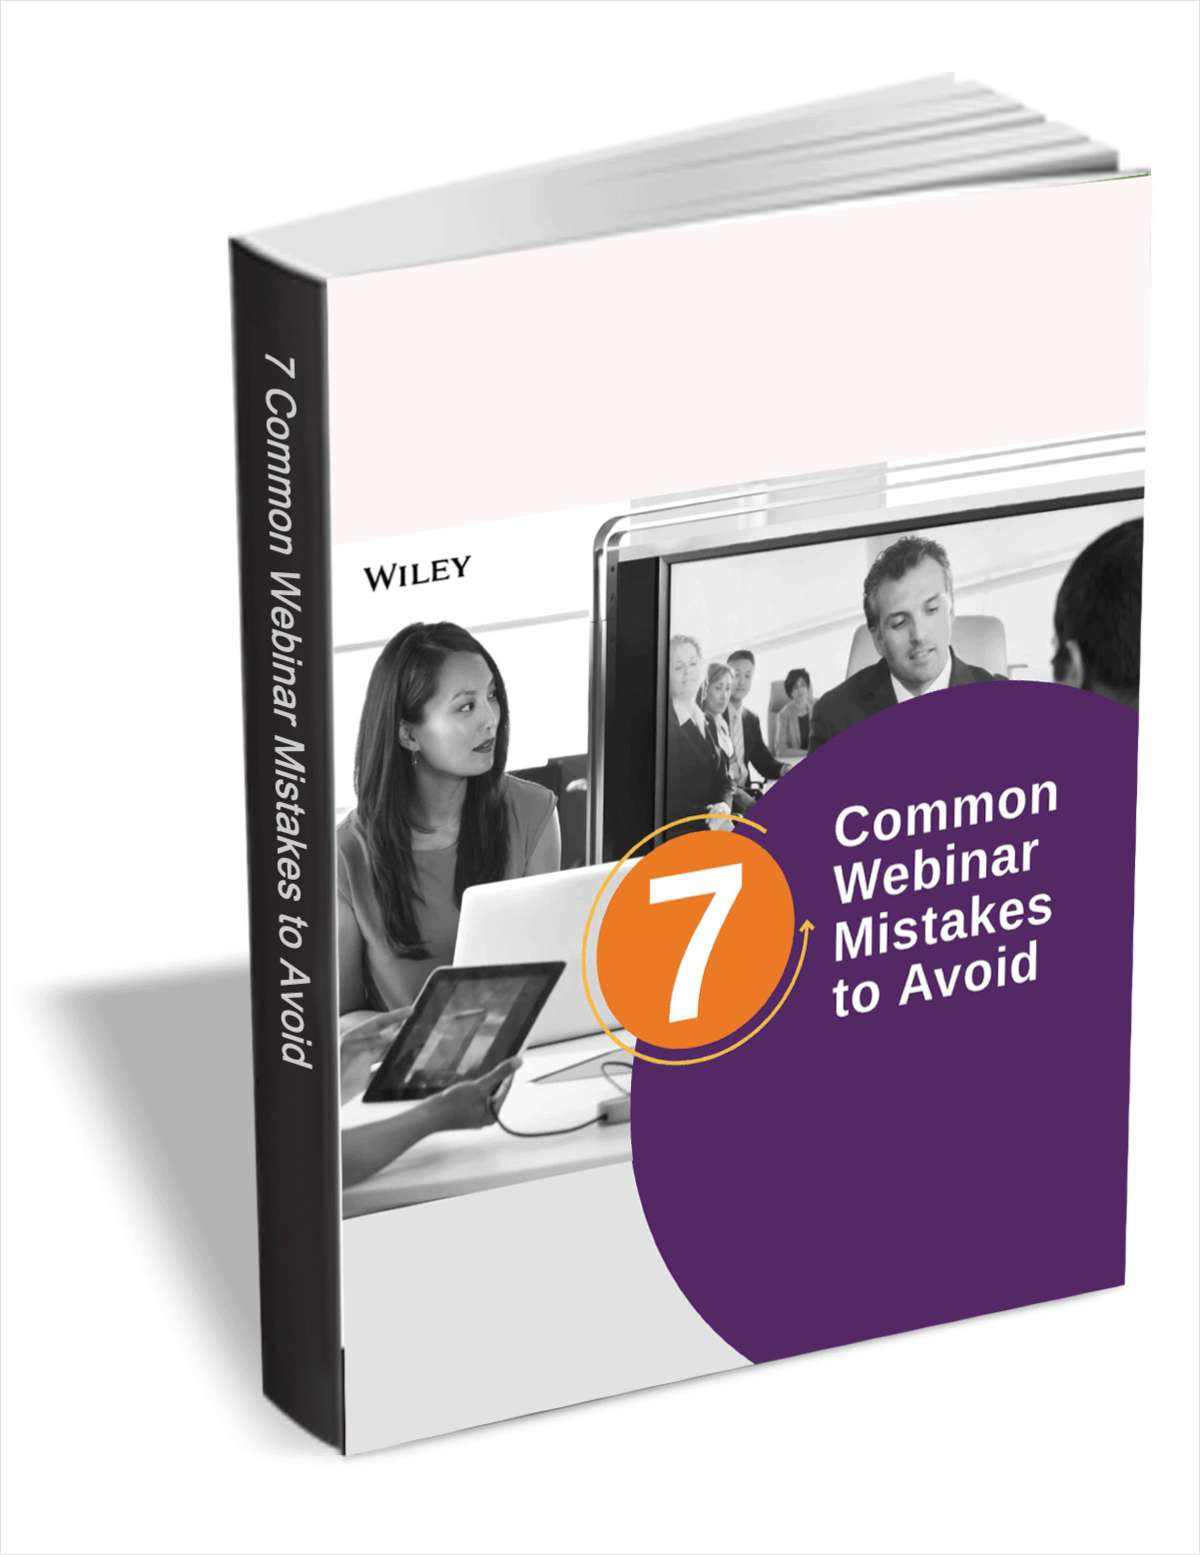 7 Common Webinar Mistakes to Avoid